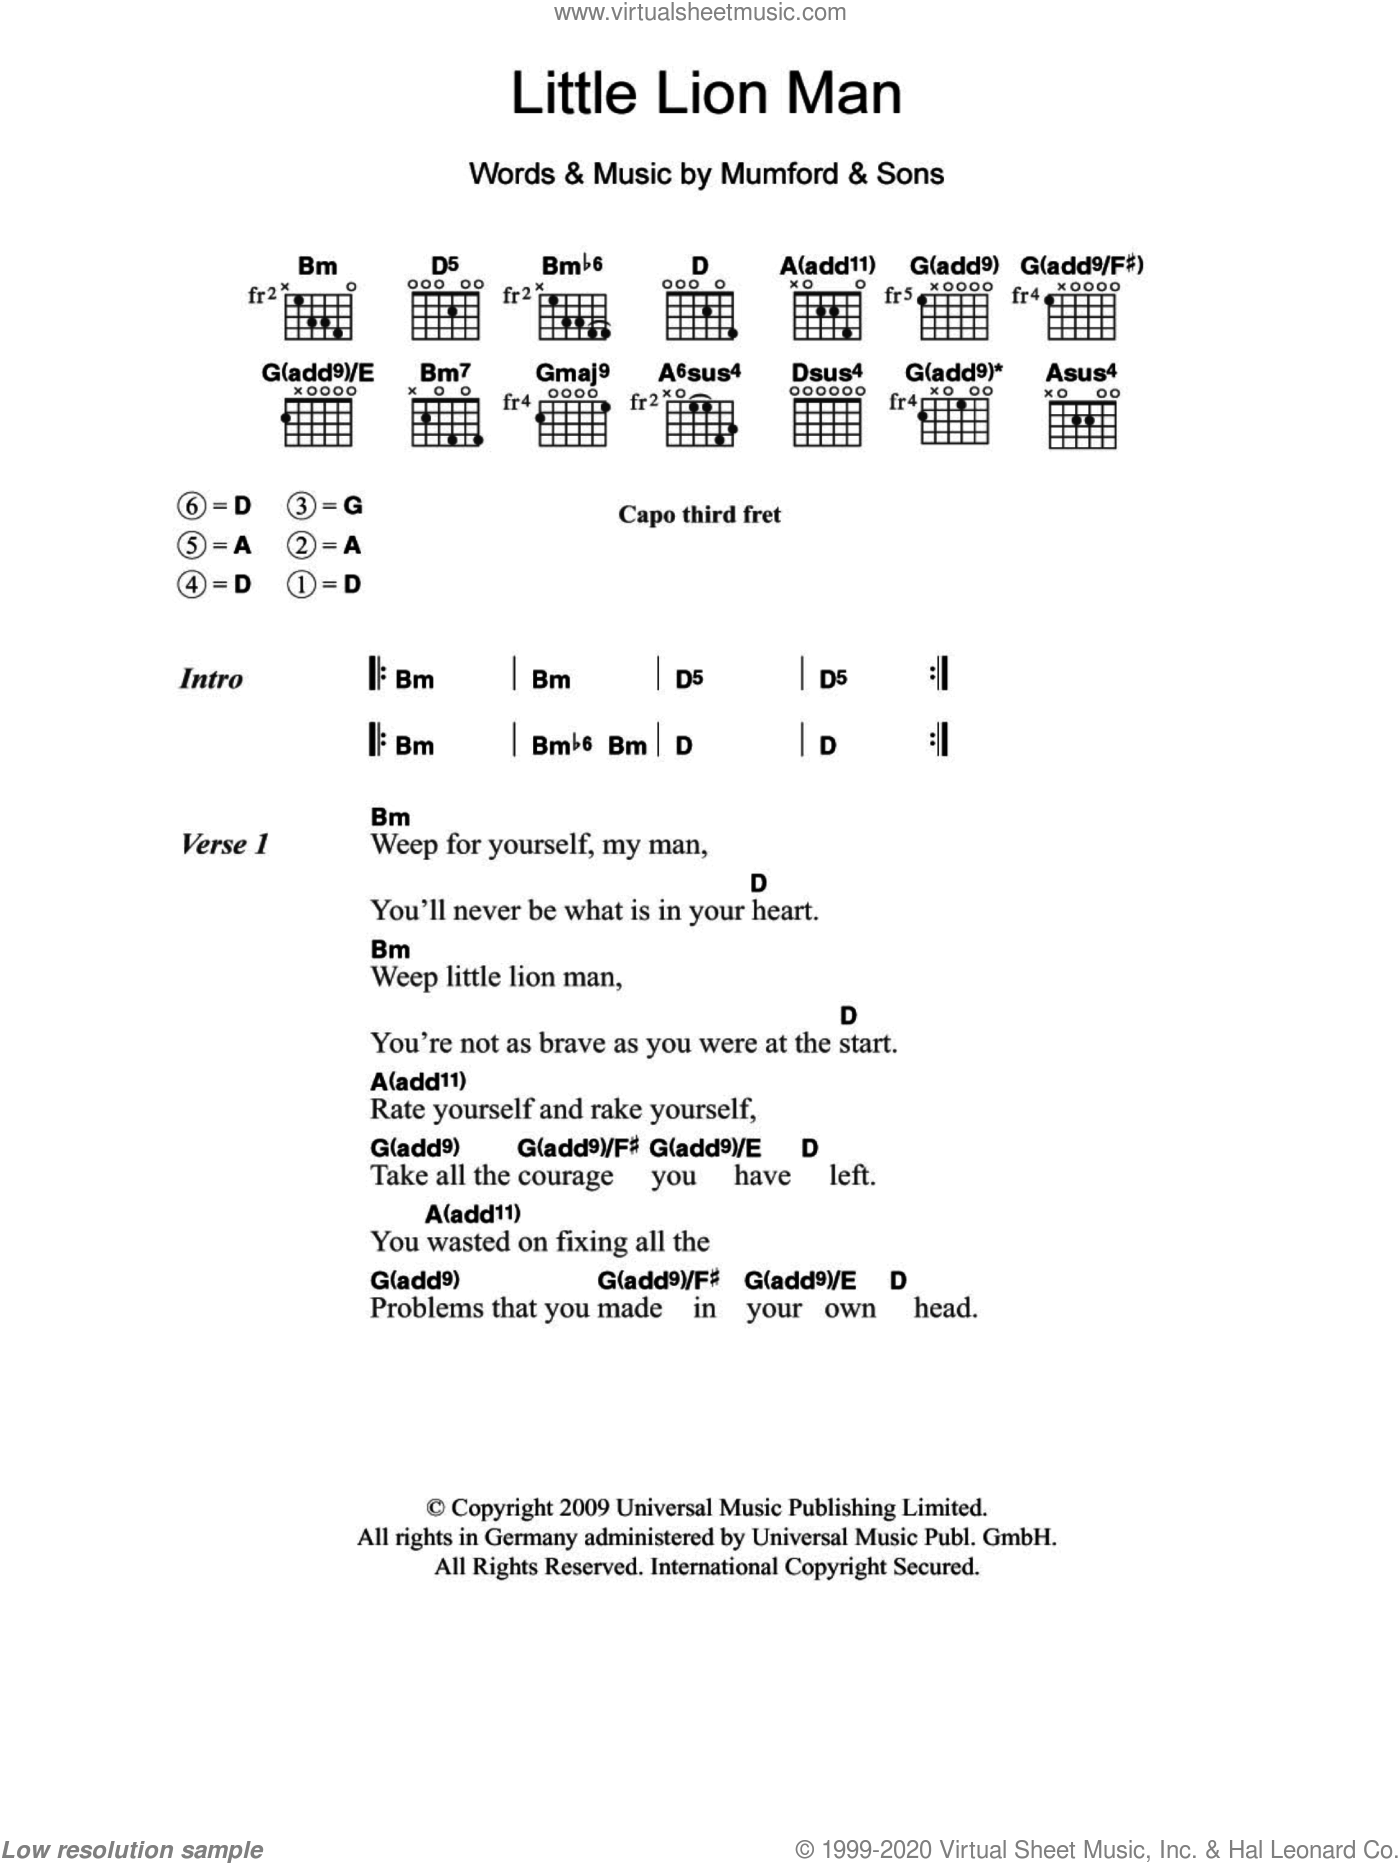 Little Lion Man sheet music for guitar (chords) by Mumford & Sons